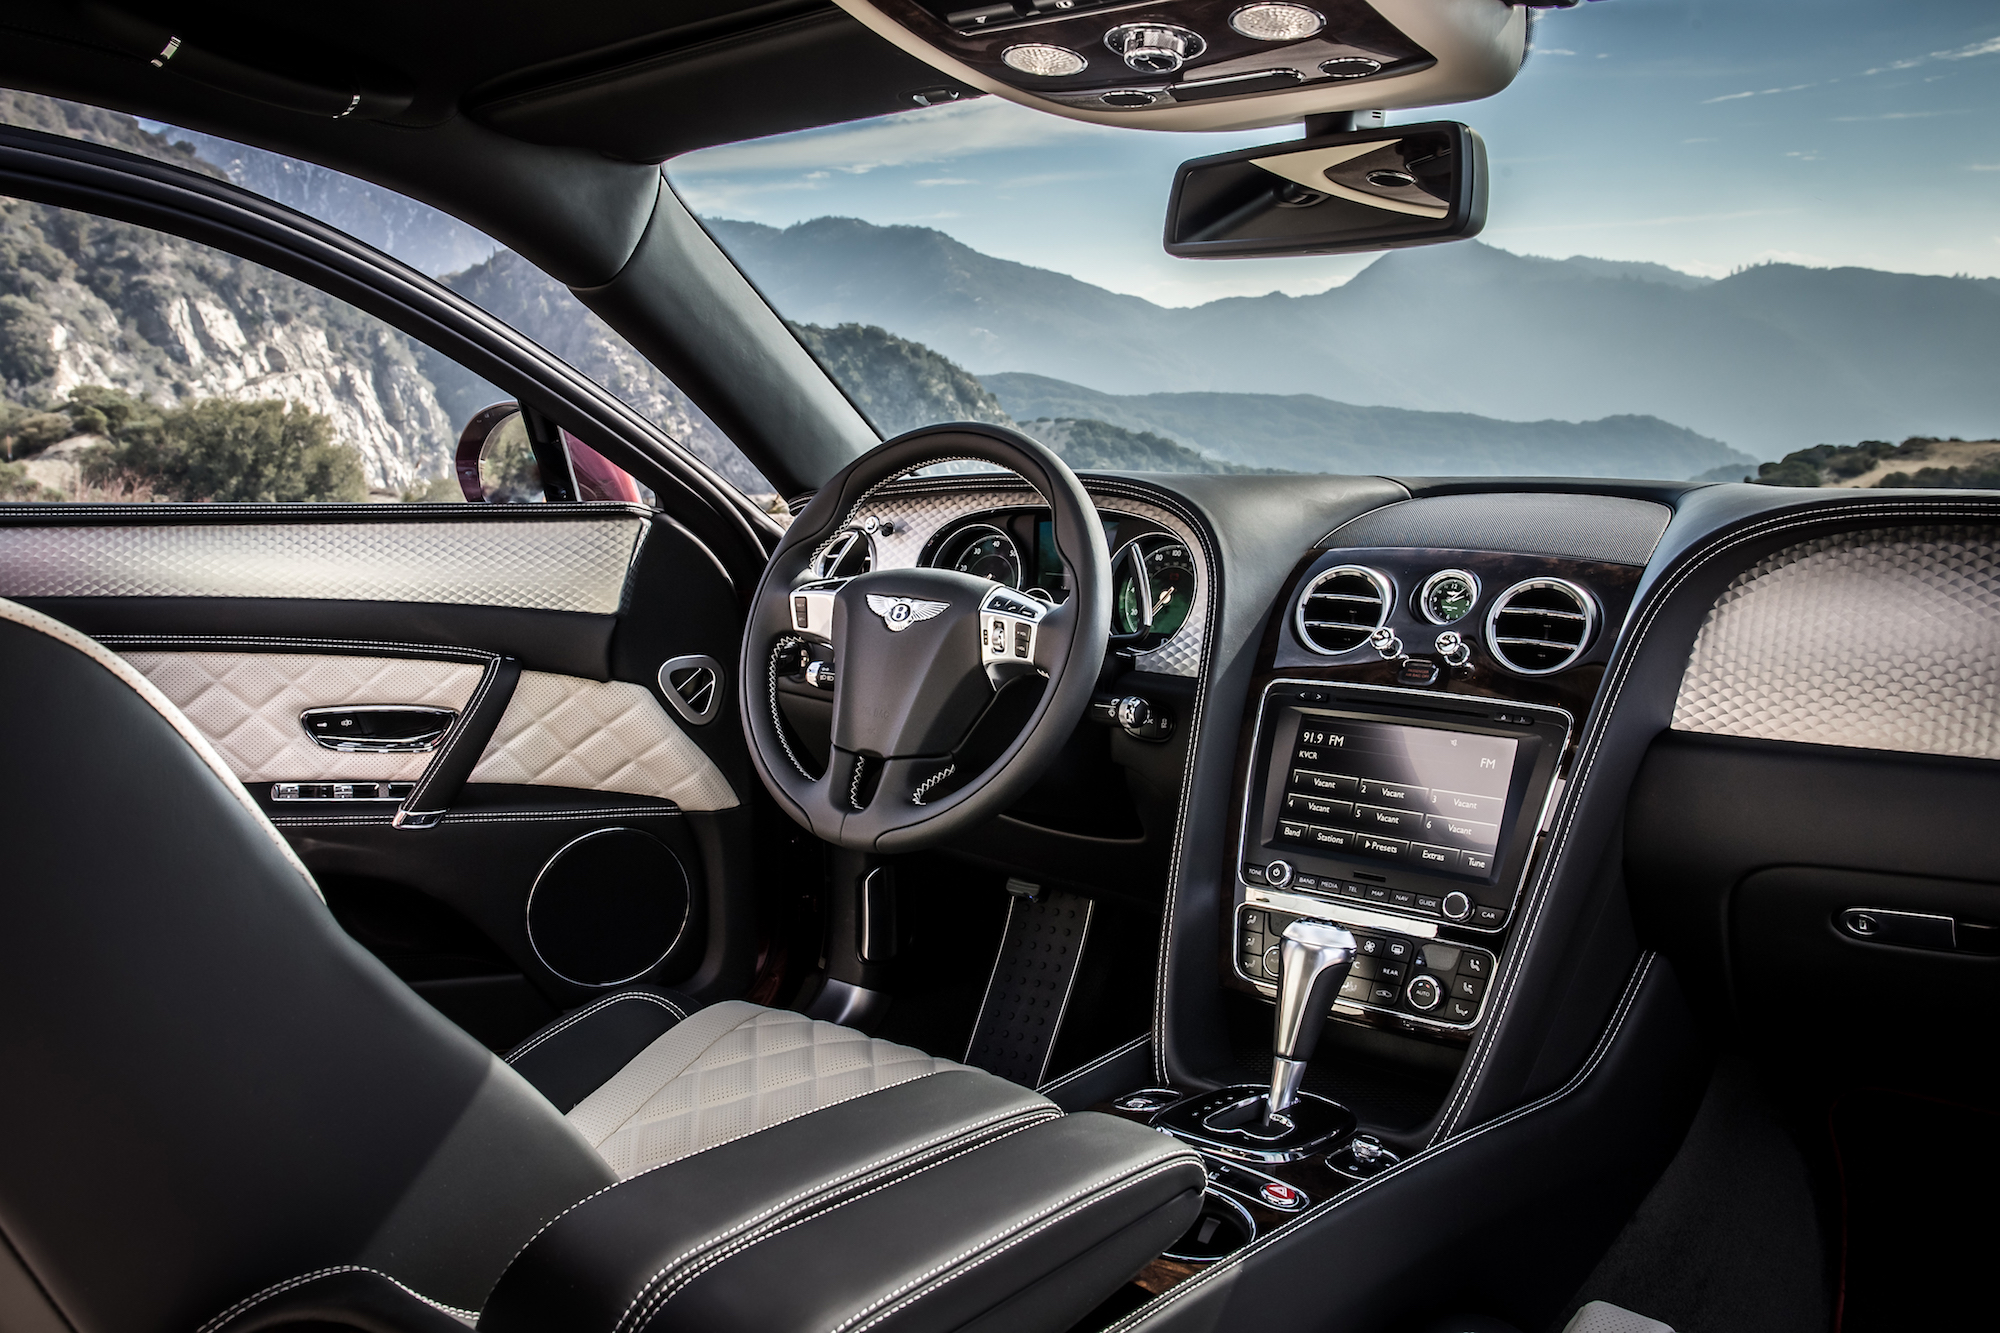 2017 bentley flying spur w12 s is 202 mph luxury exotic car list. Black Bedroom Furniture Sets. Home Design Ideas